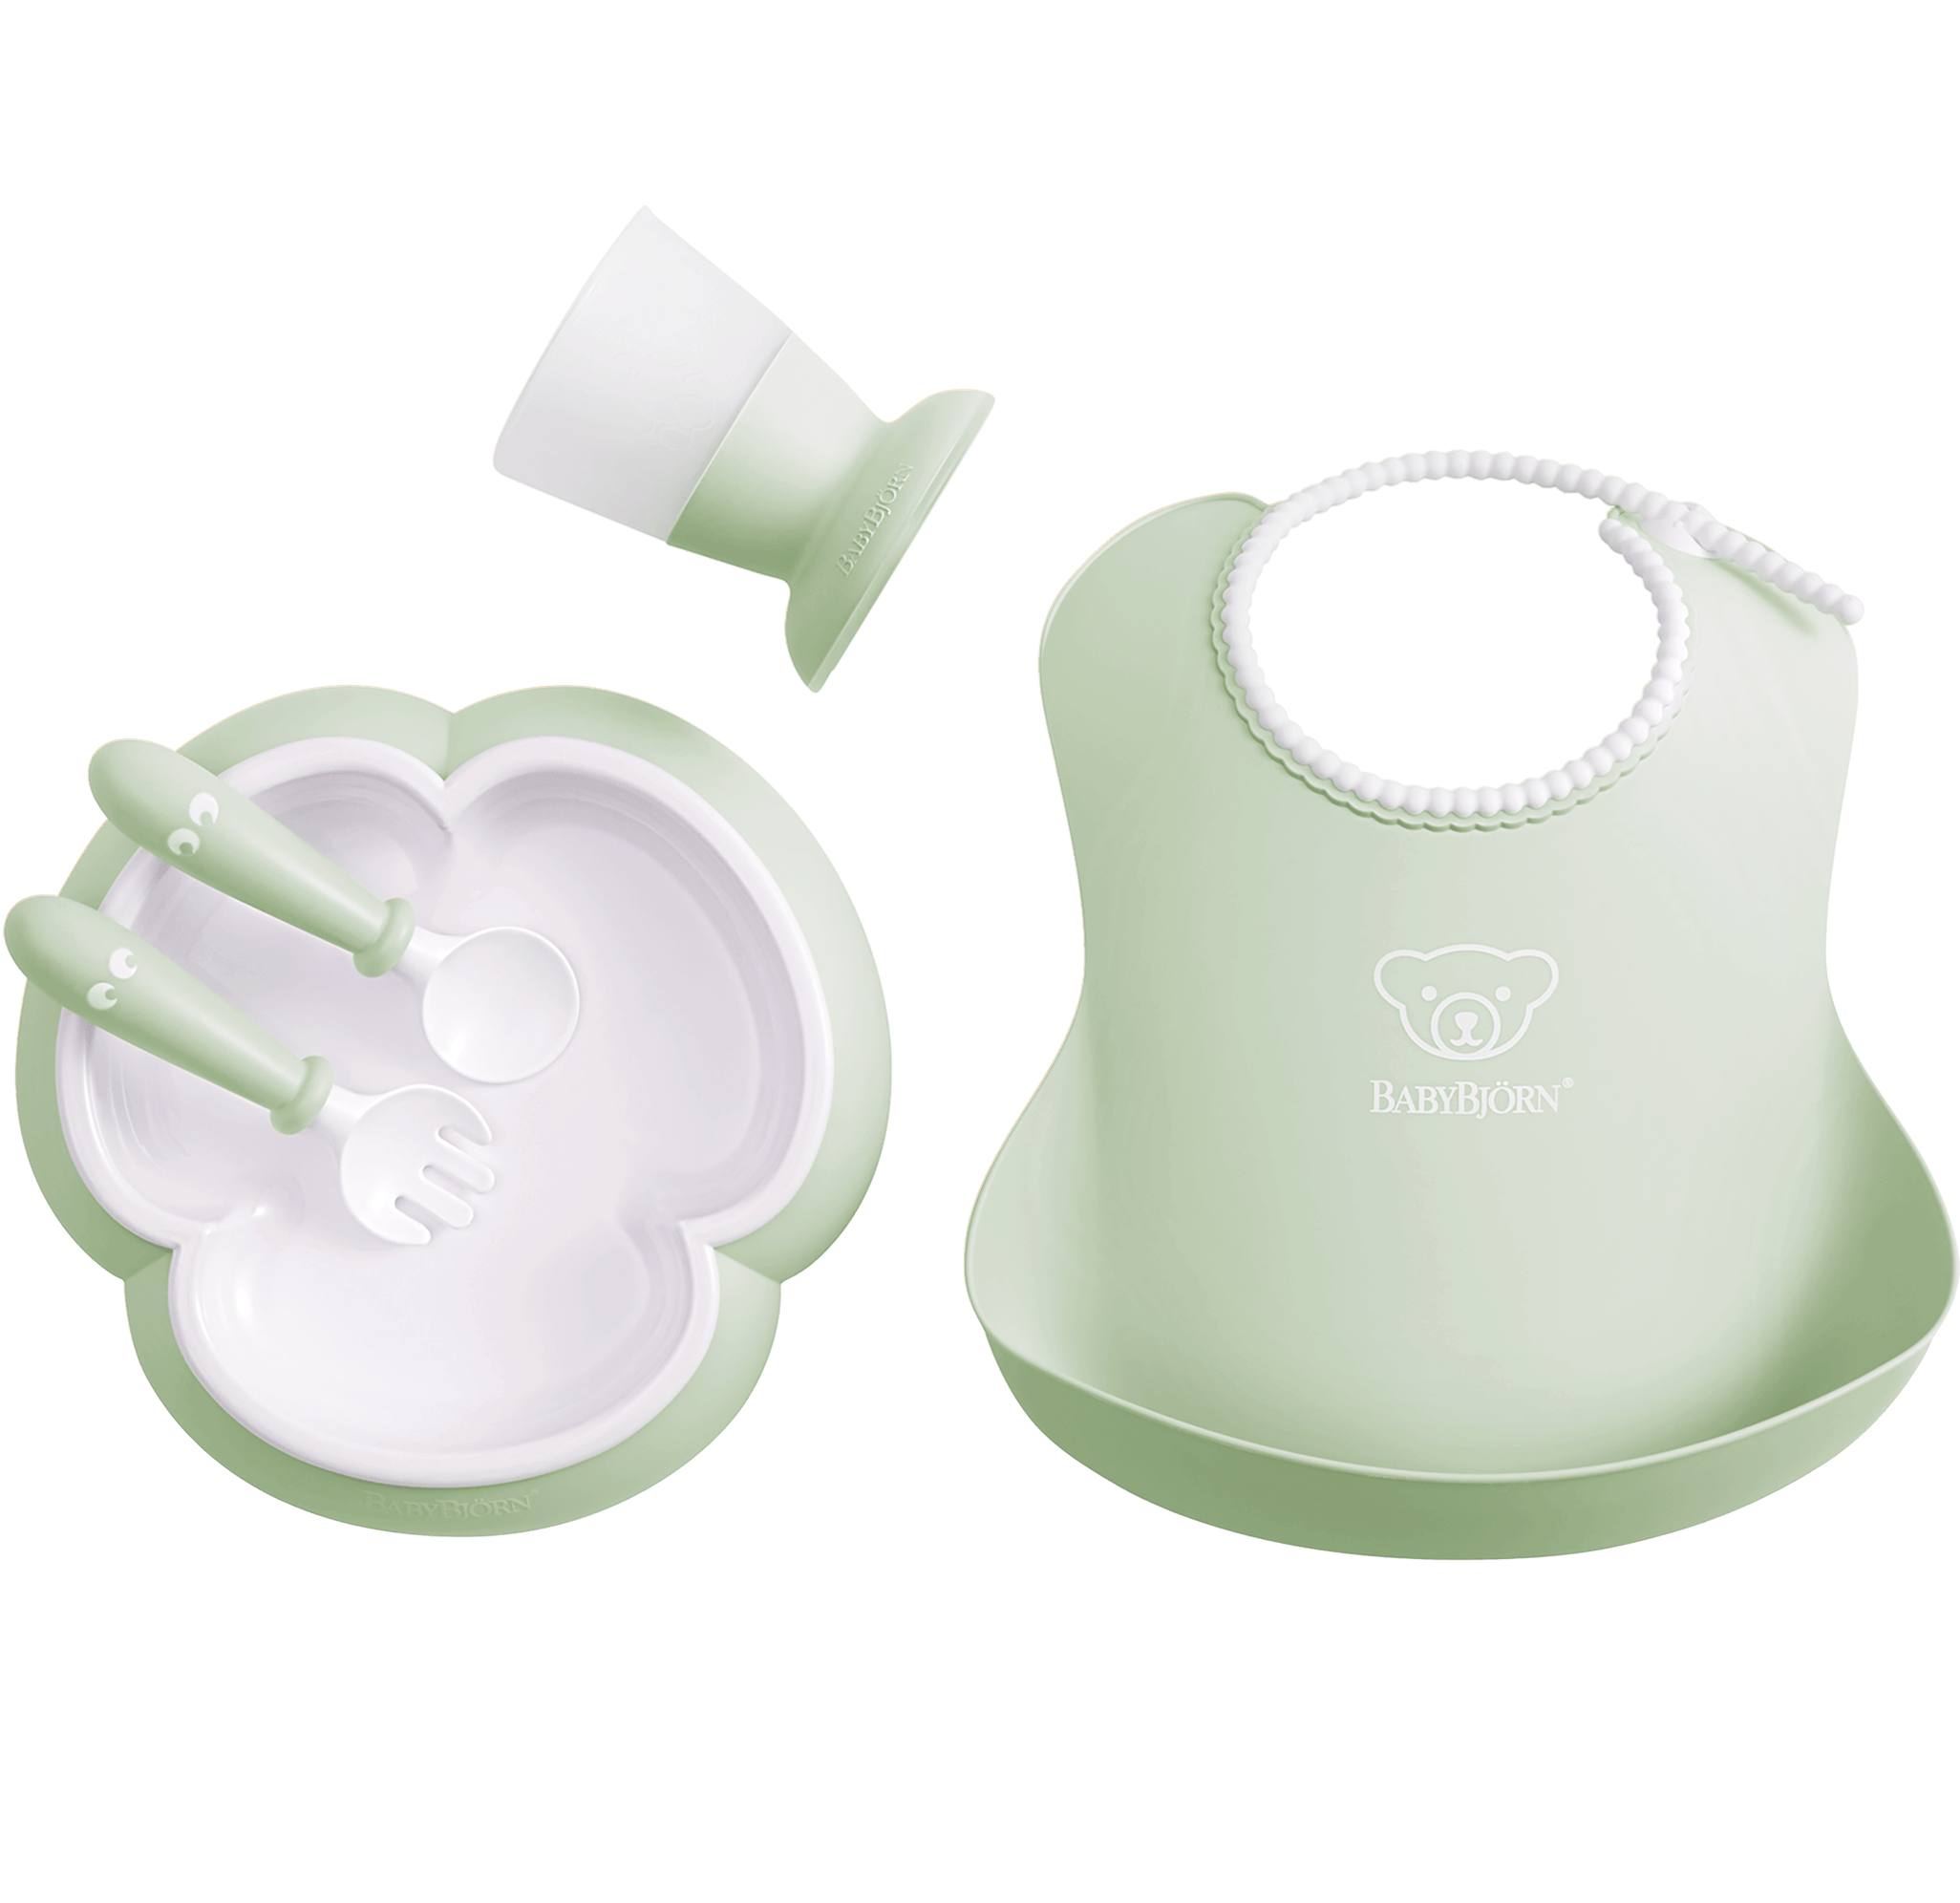 Baby Dinner Set, Powder green, Dinner set with smart design for fun mealtimes - BABYBJÖRN